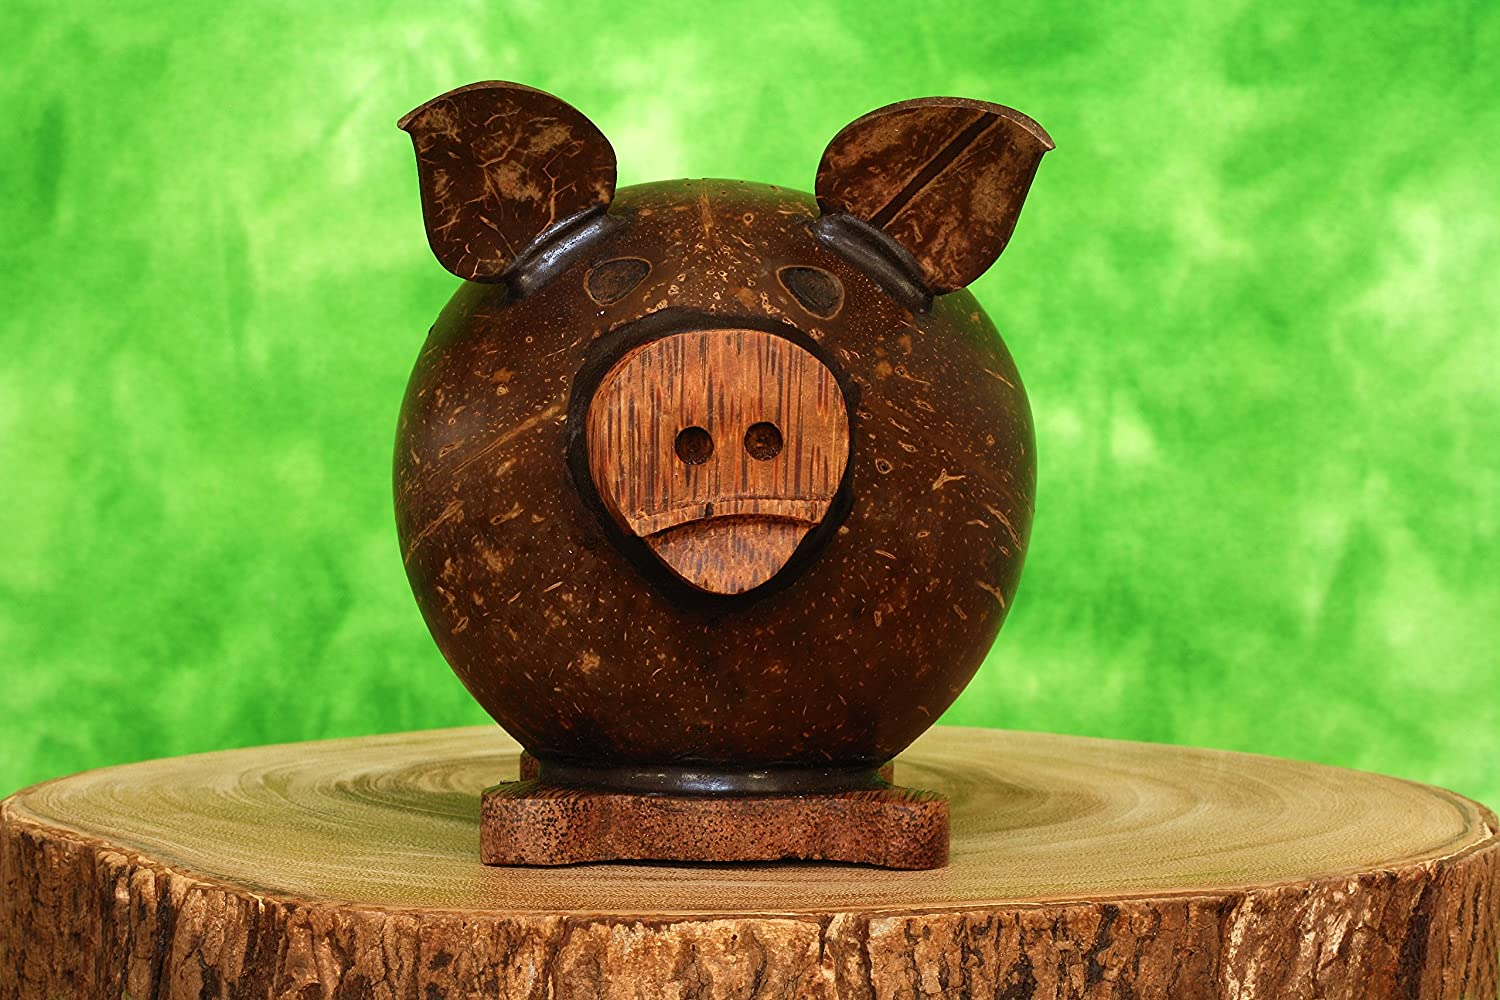 G6 Collection Unique Handmade Coconut Shell Wood Cute Pig Coin Piggy Bank Handcrafted Wooden Rustic Hand Carved Decorative Keepsake Saving Money Adorable Kids Room Decor Gift Pig Bank